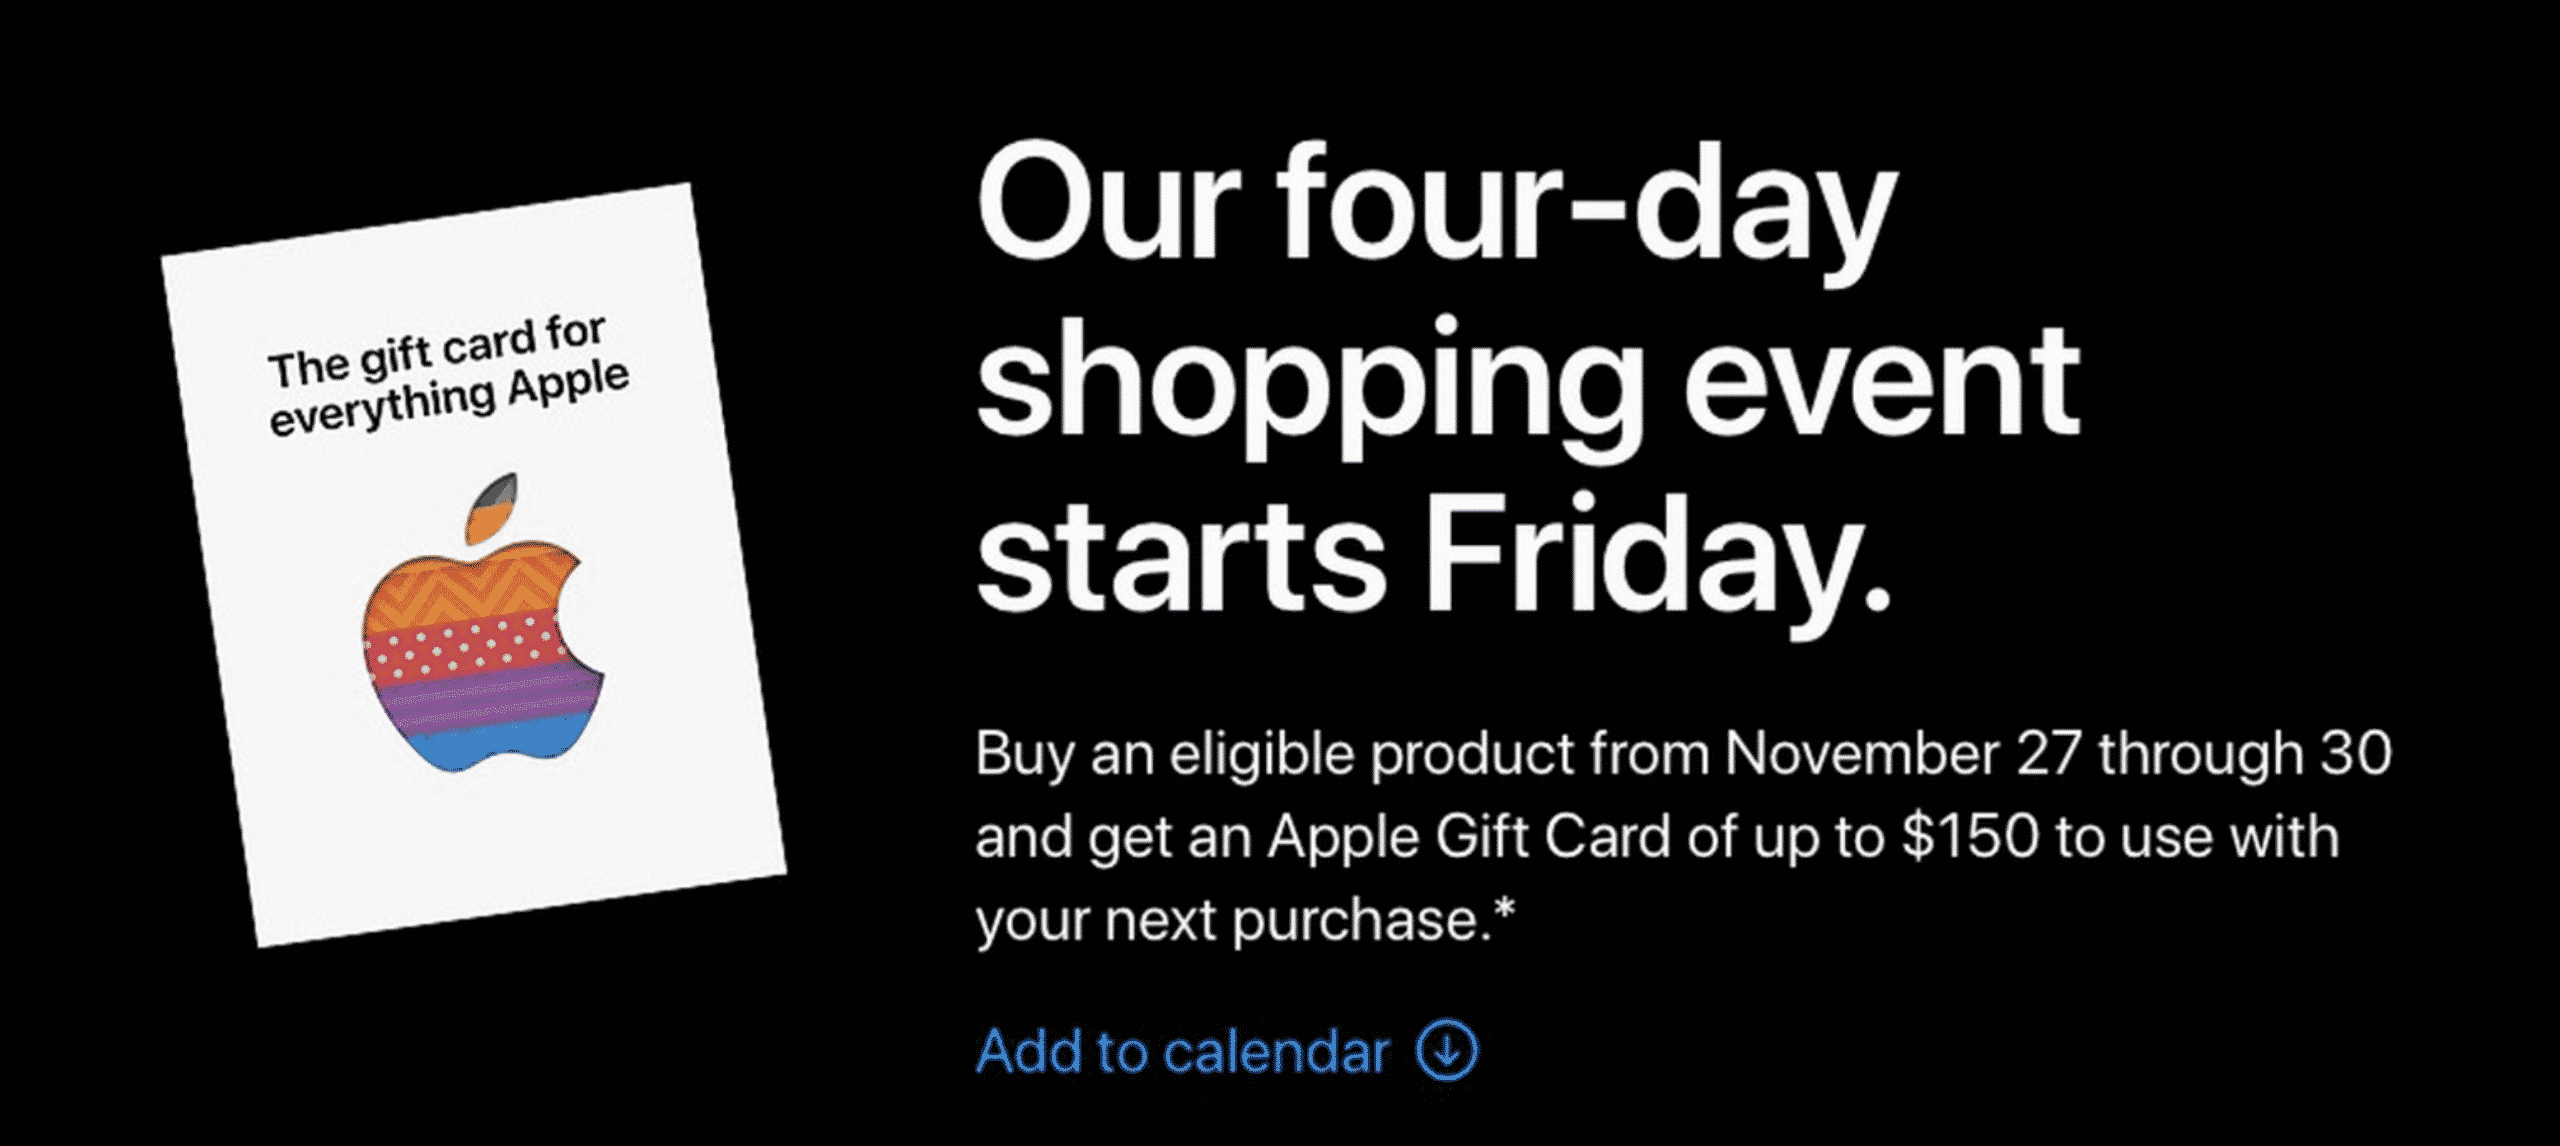 Apple 4-Day Gift Card